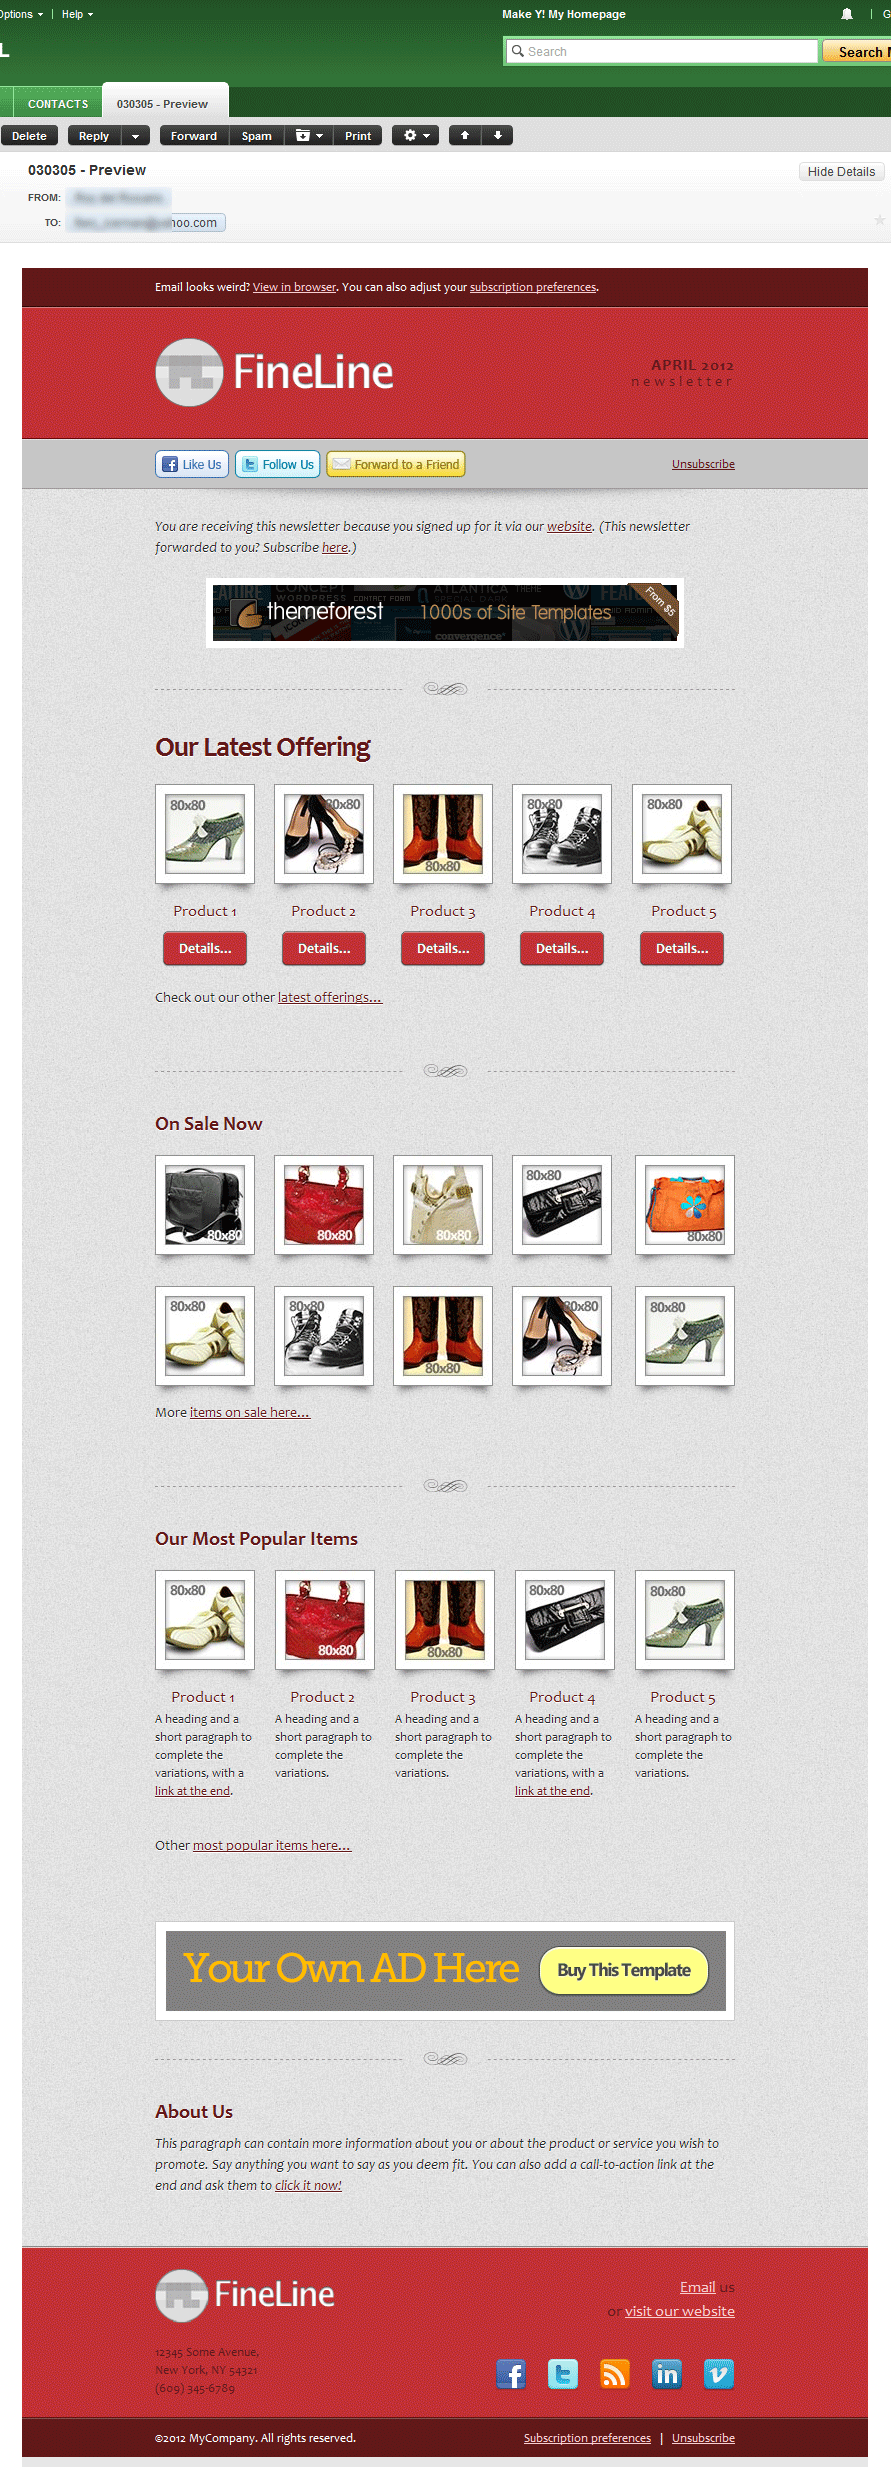 FineLine - Email Template - 30 Layouts 8 Colors - Screenshot in Yahoo! mail, as viewed using Google Chrome